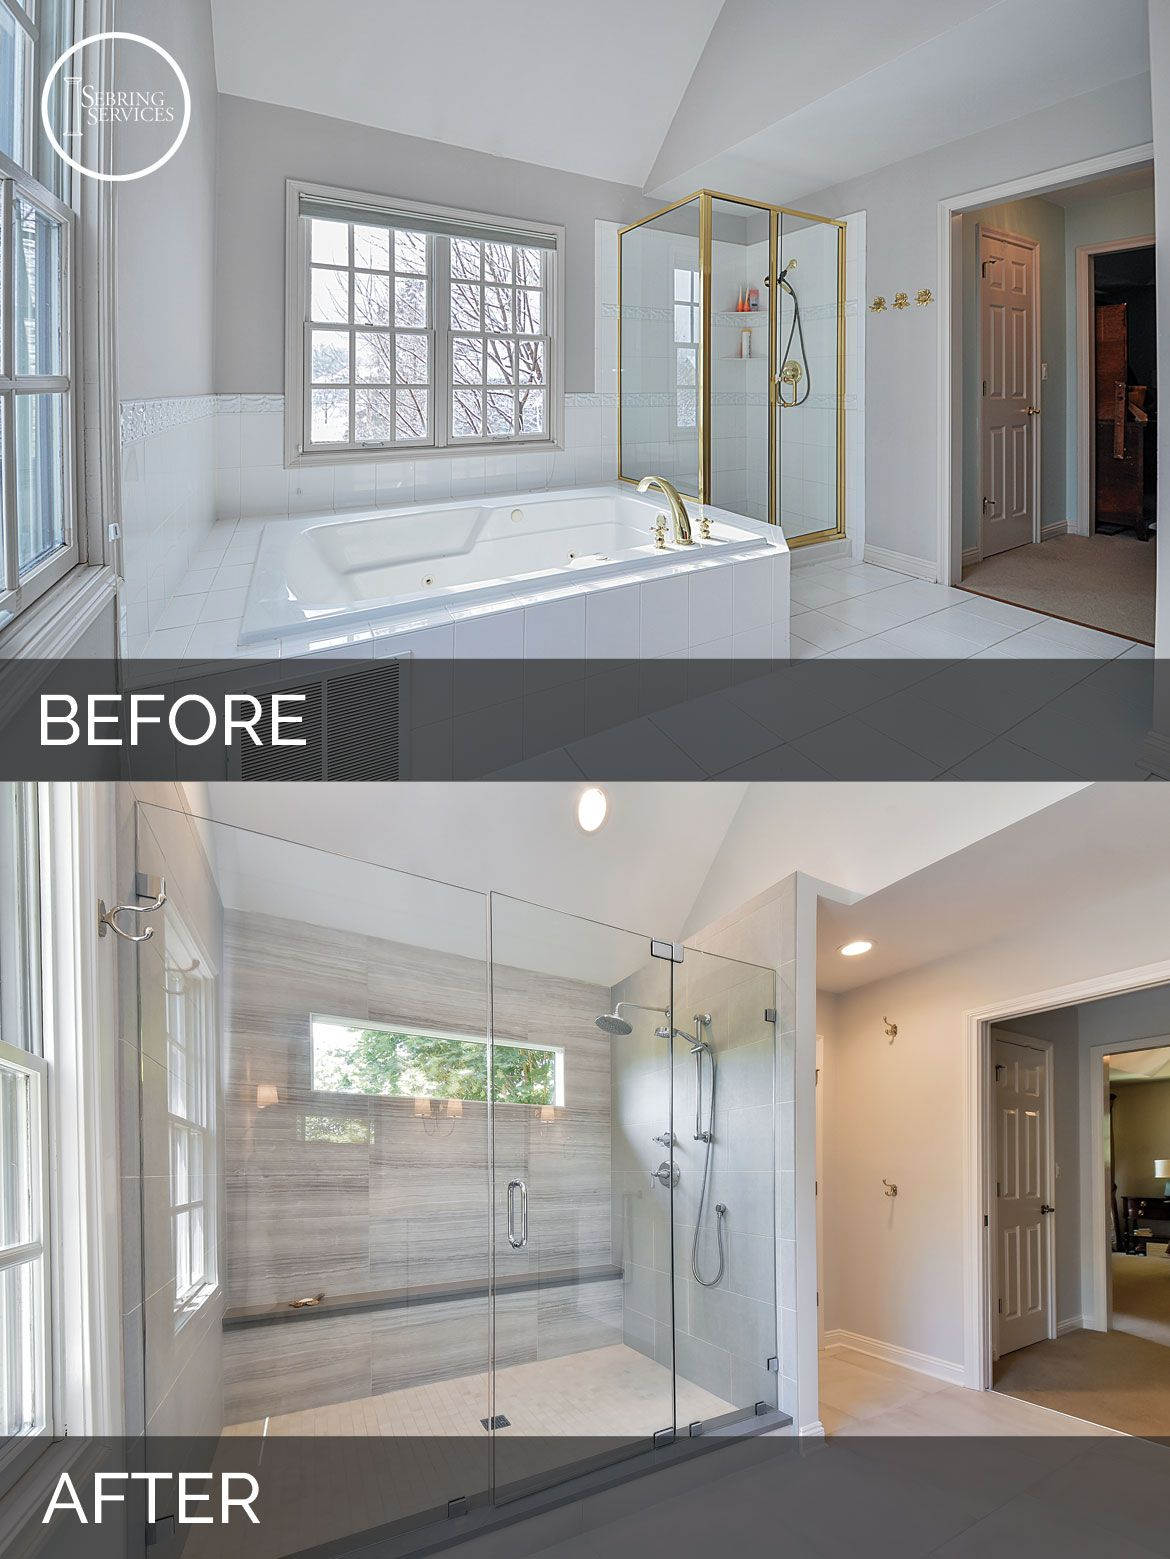 Carl susan 39 s master bath before after pictures for Restroom renovations